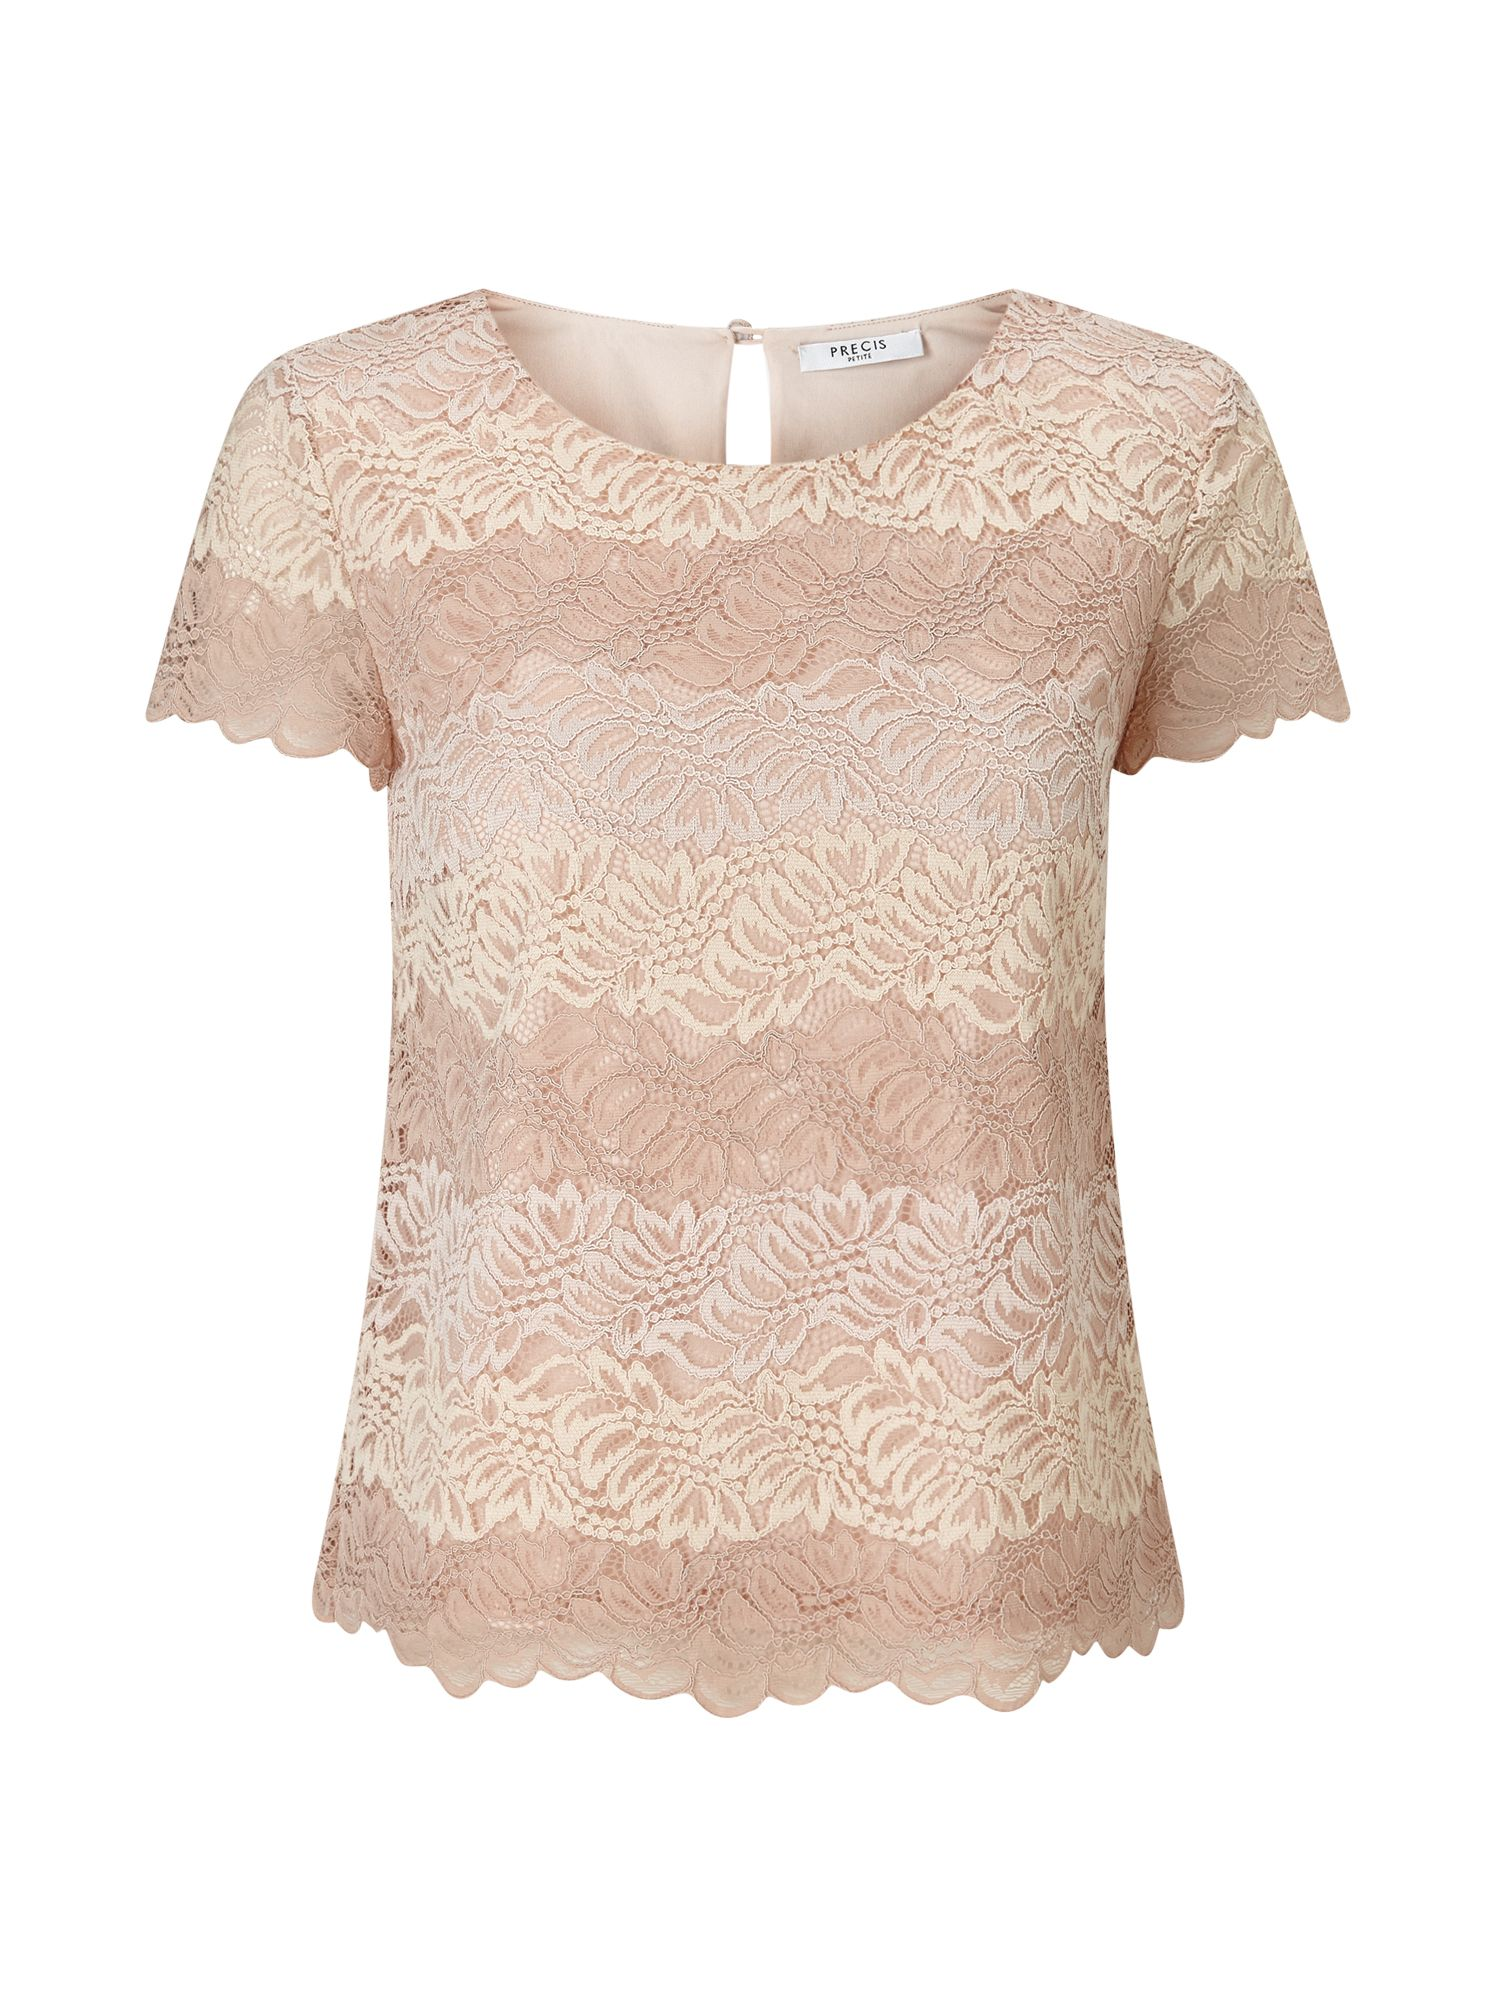 Precis Petite Petite Sara Stripe Lace Top, Neutral